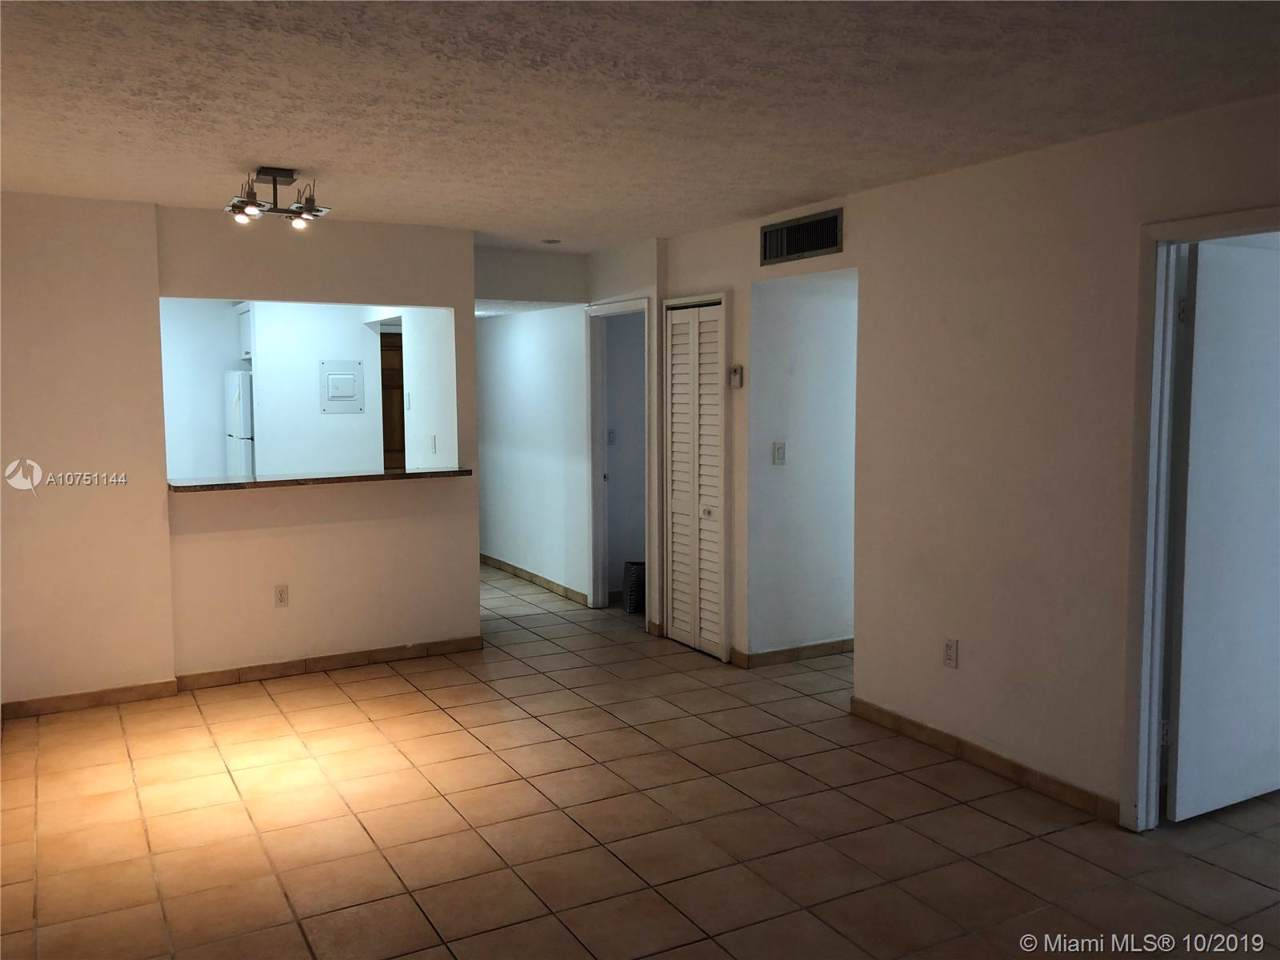 6070 18th Ave - Photo 1